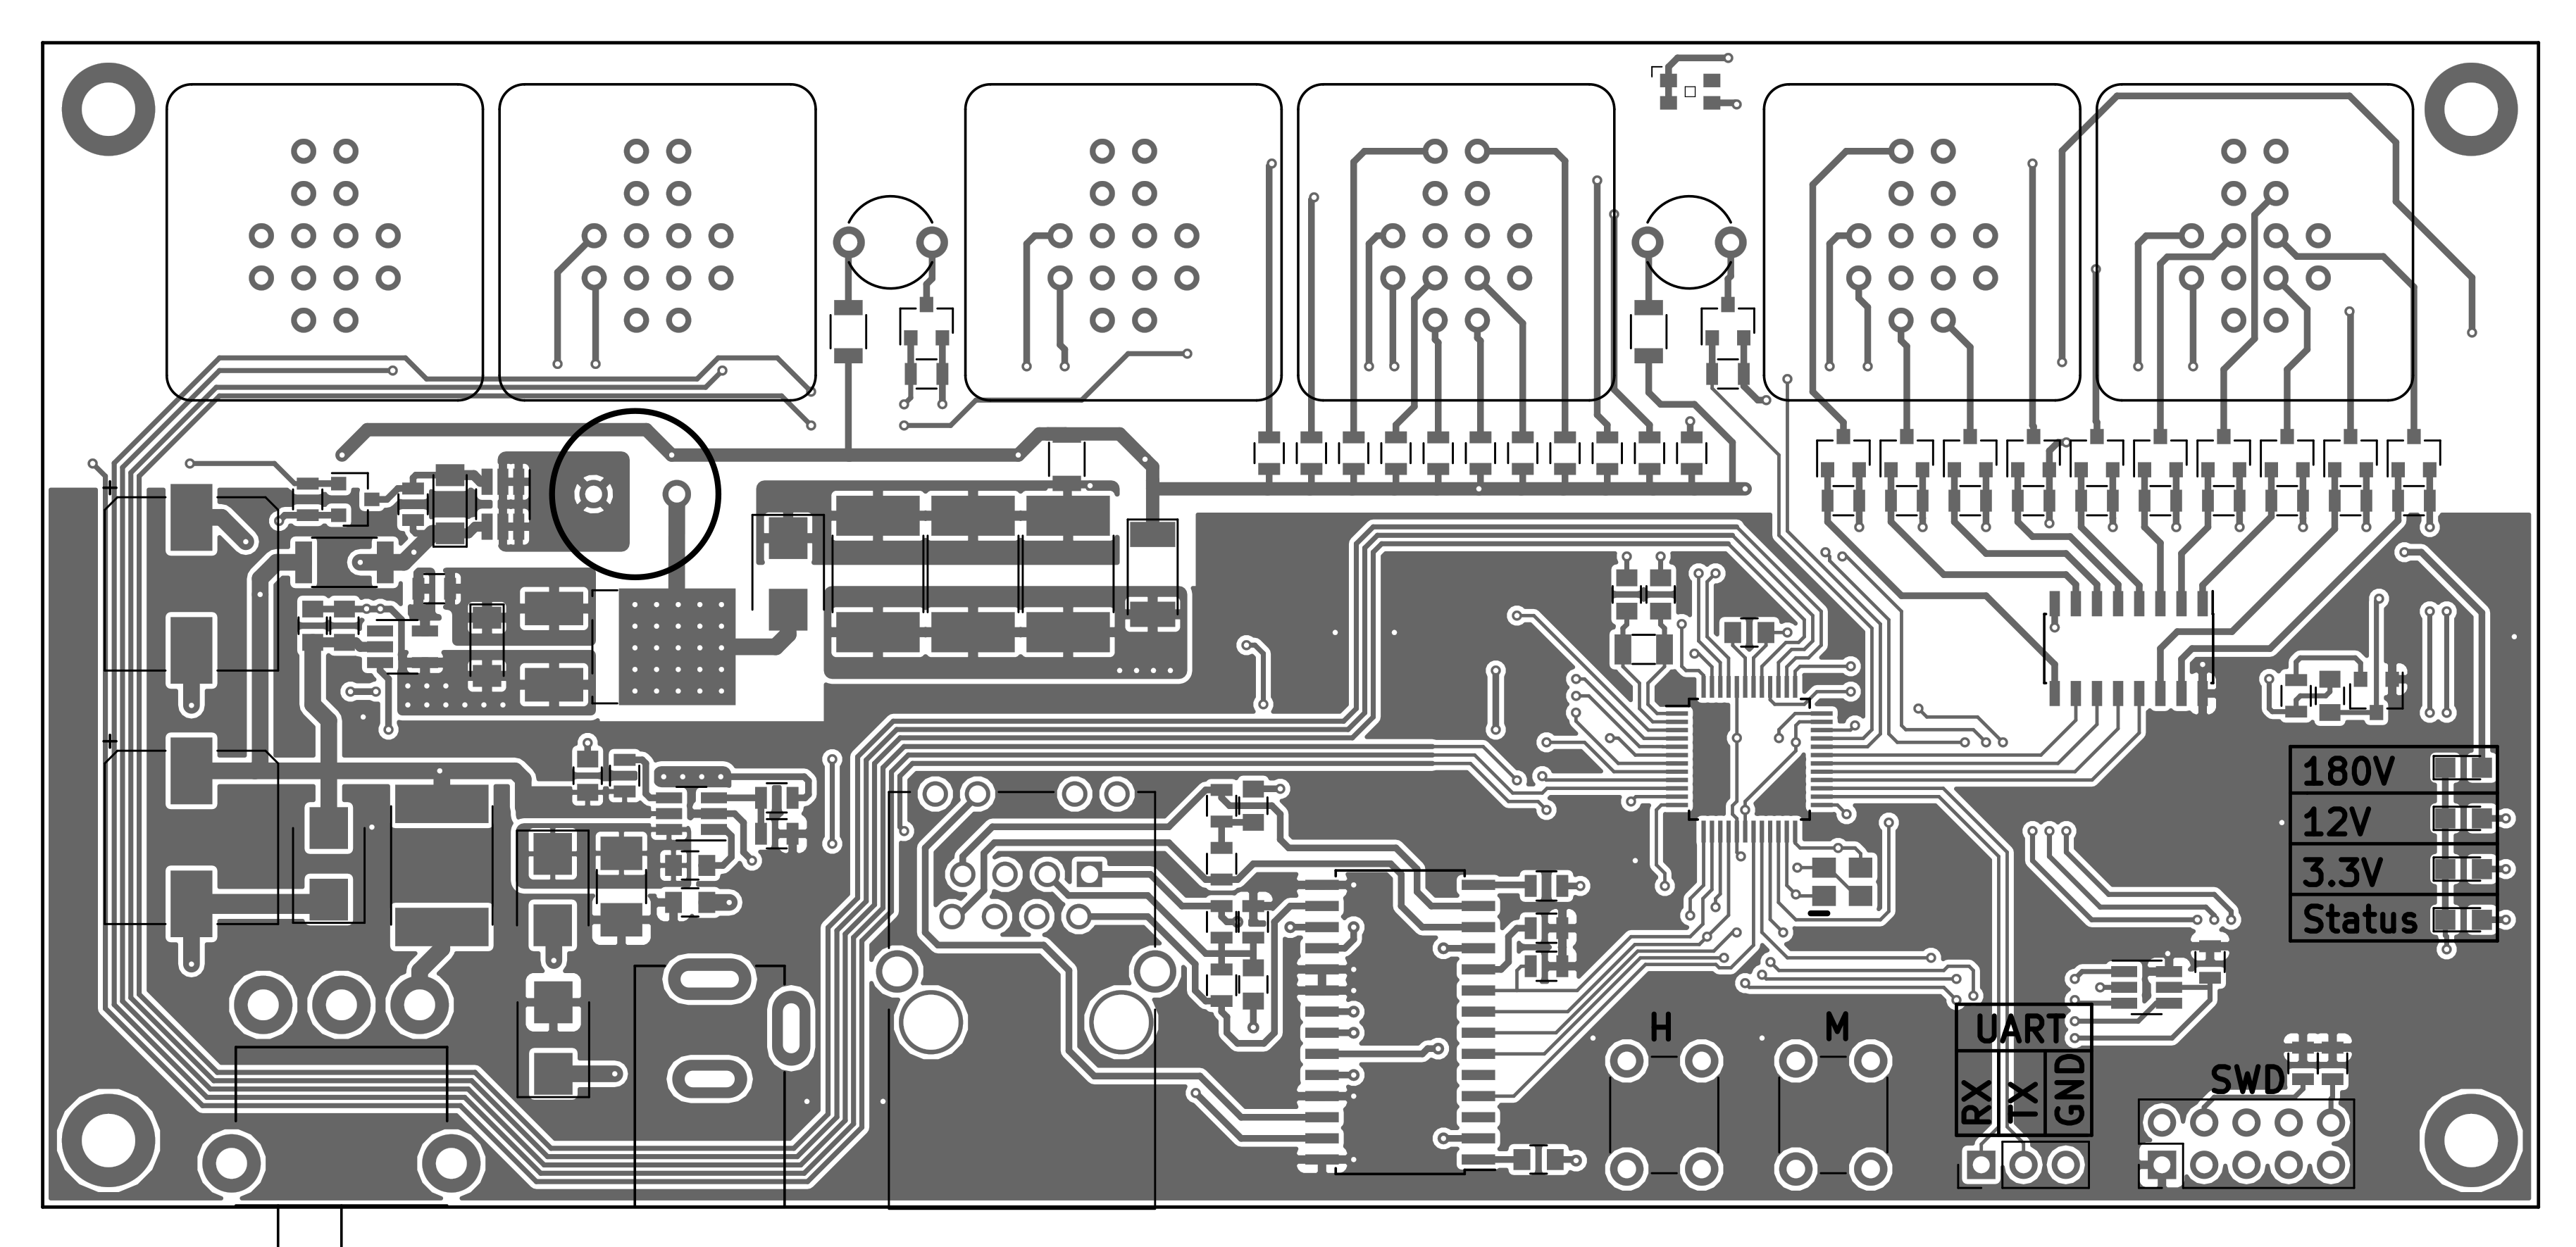 BP/pictures/PCB_front.png